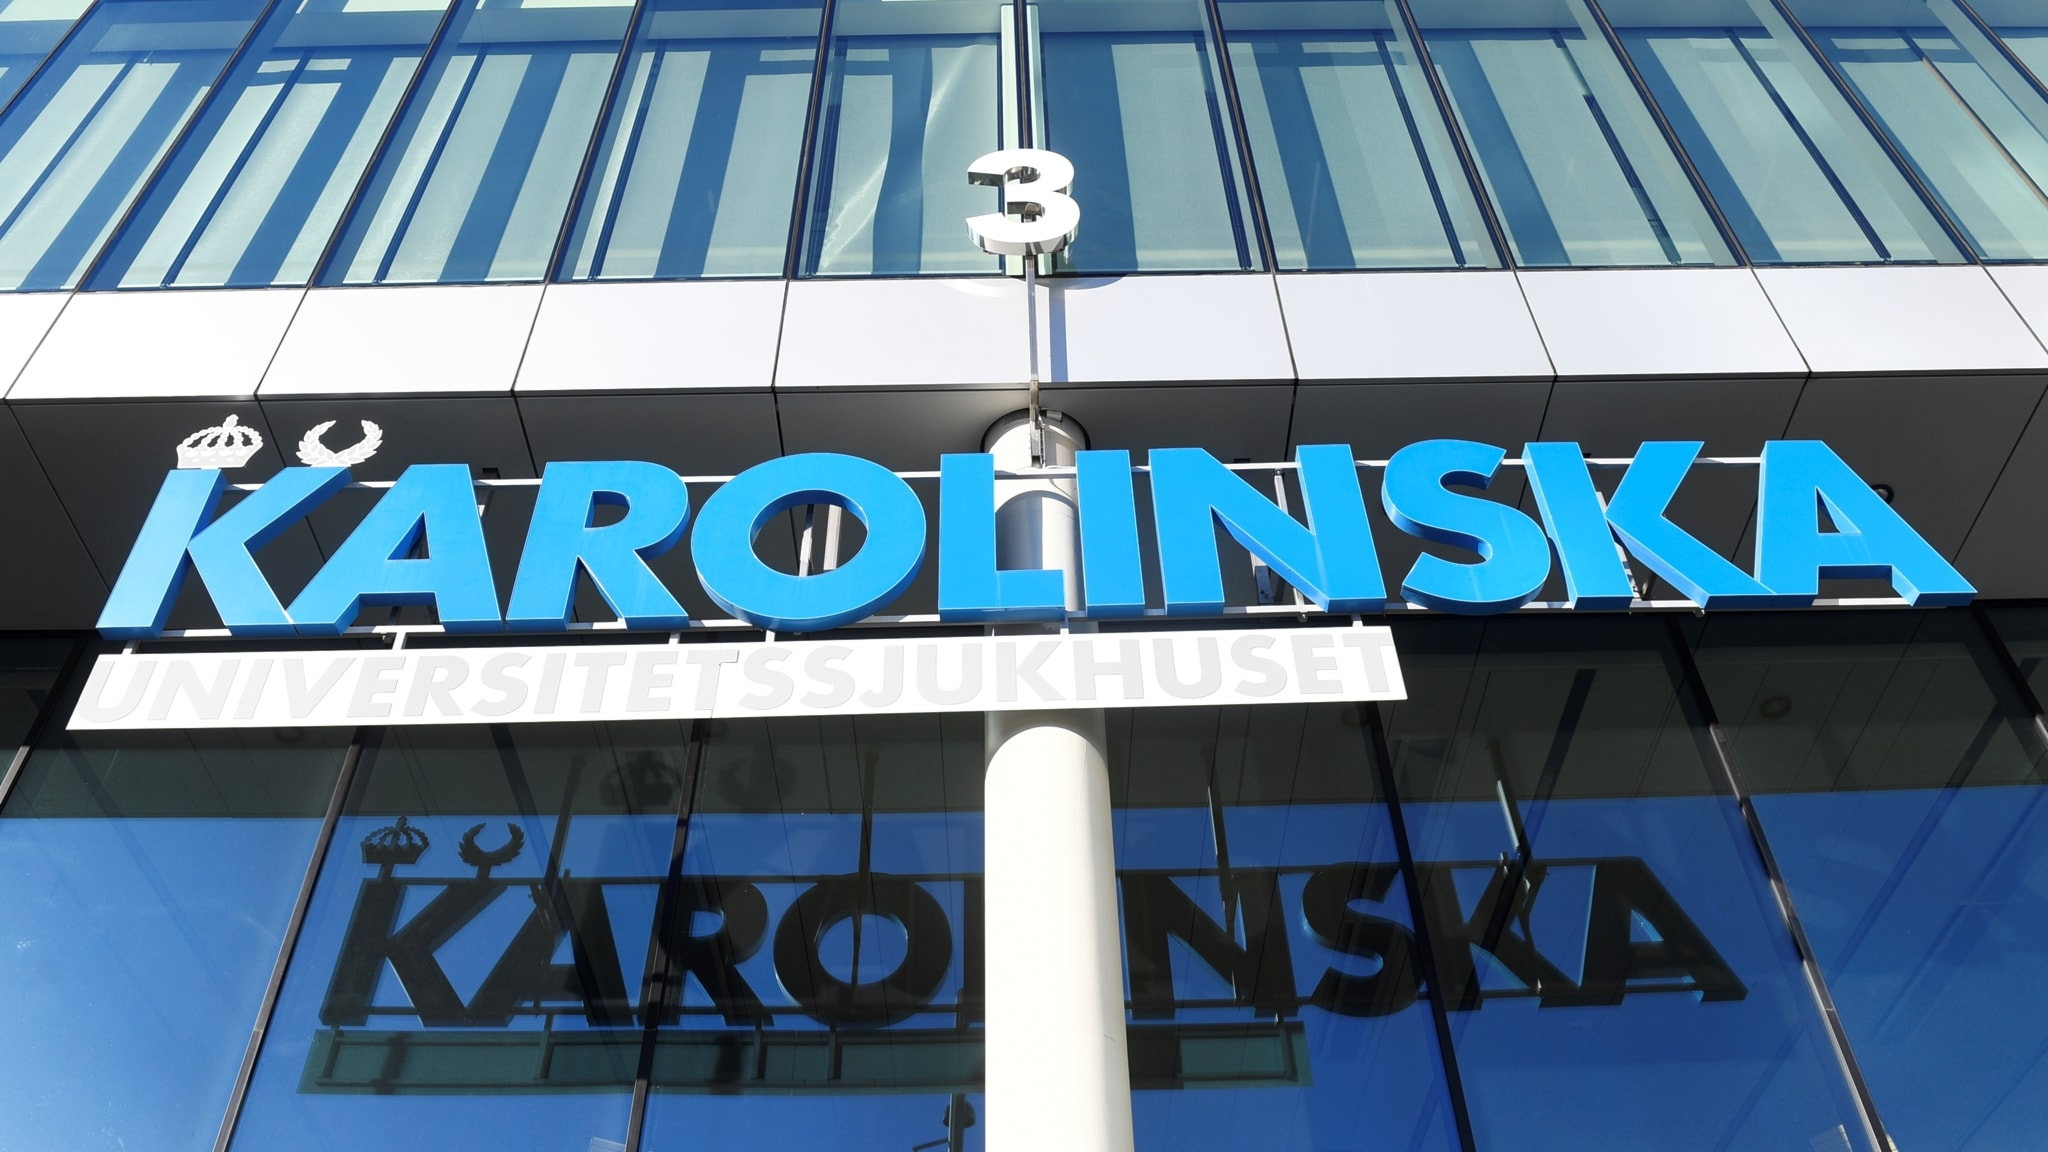 Christian Democrat MEP, lay-offs at Karolinska, defence disagreement and choosing sustainable seafood